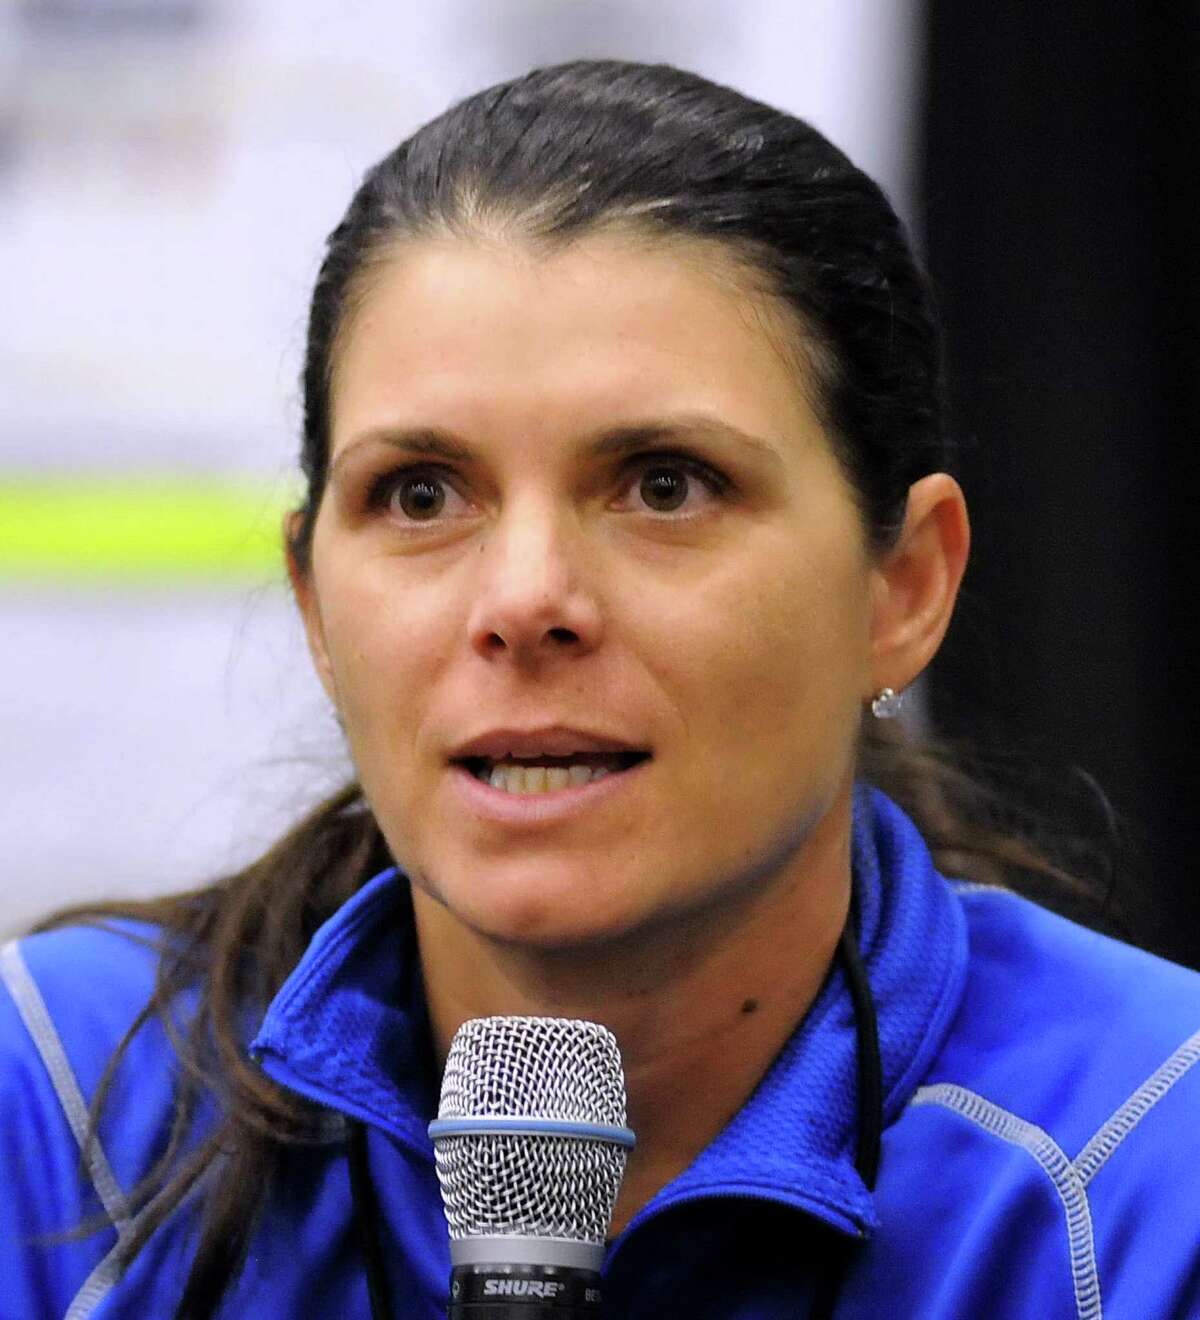 American soccer player, Mia Hamm, answers questions at the Soccer Night in Newtown on Monday Jan. 7, 2013.